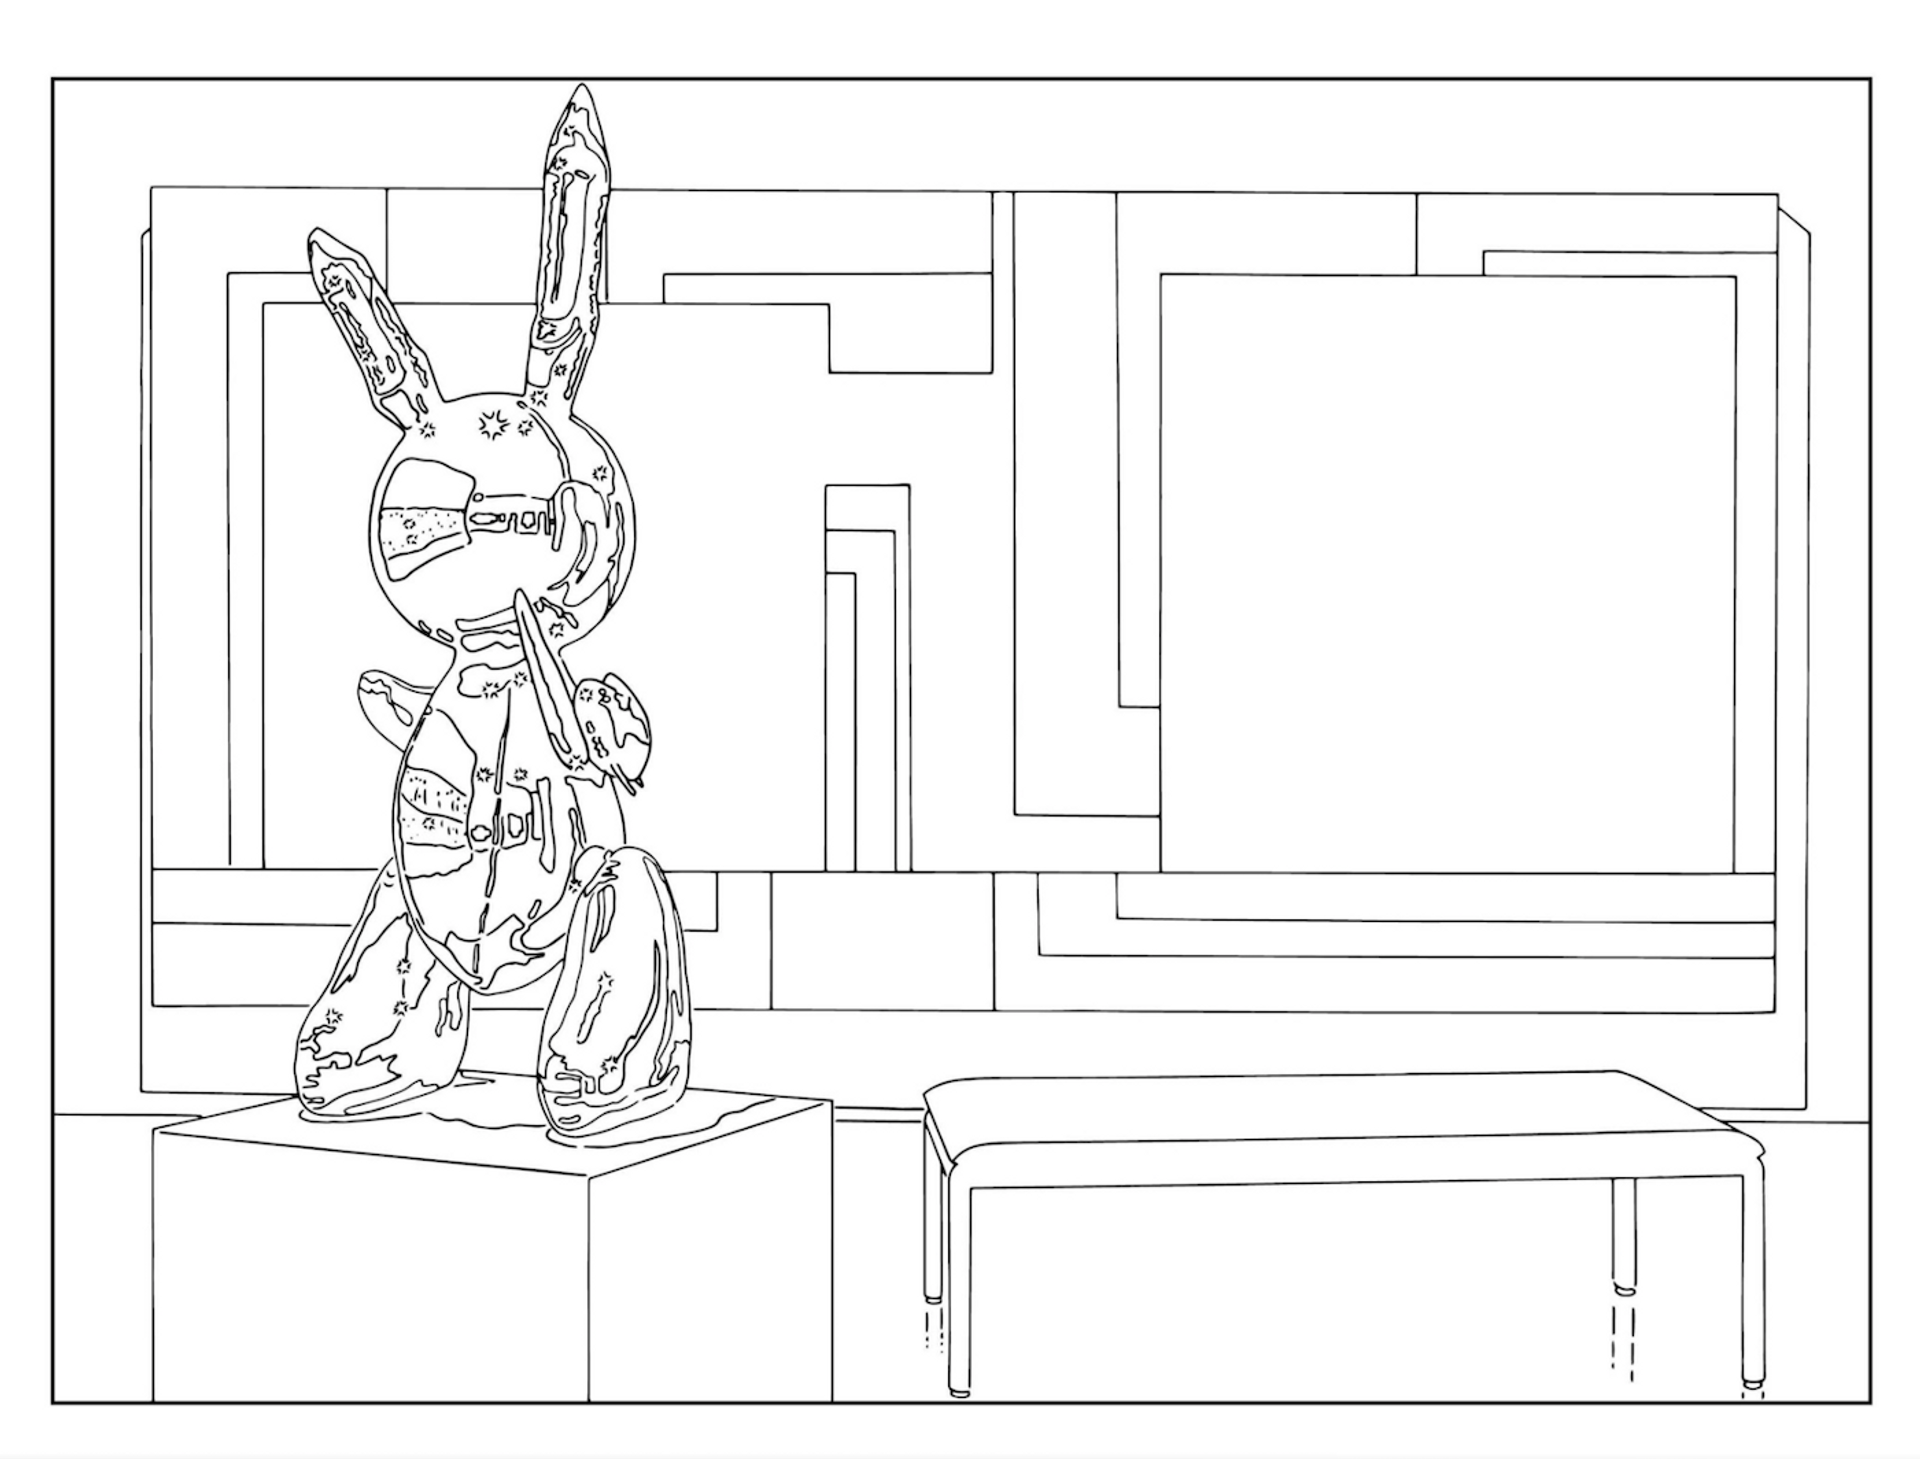 (Bunny) Sculpture and Painting (traced) (1999/2019) Courtesy of the artist and Metro Pictures, New York